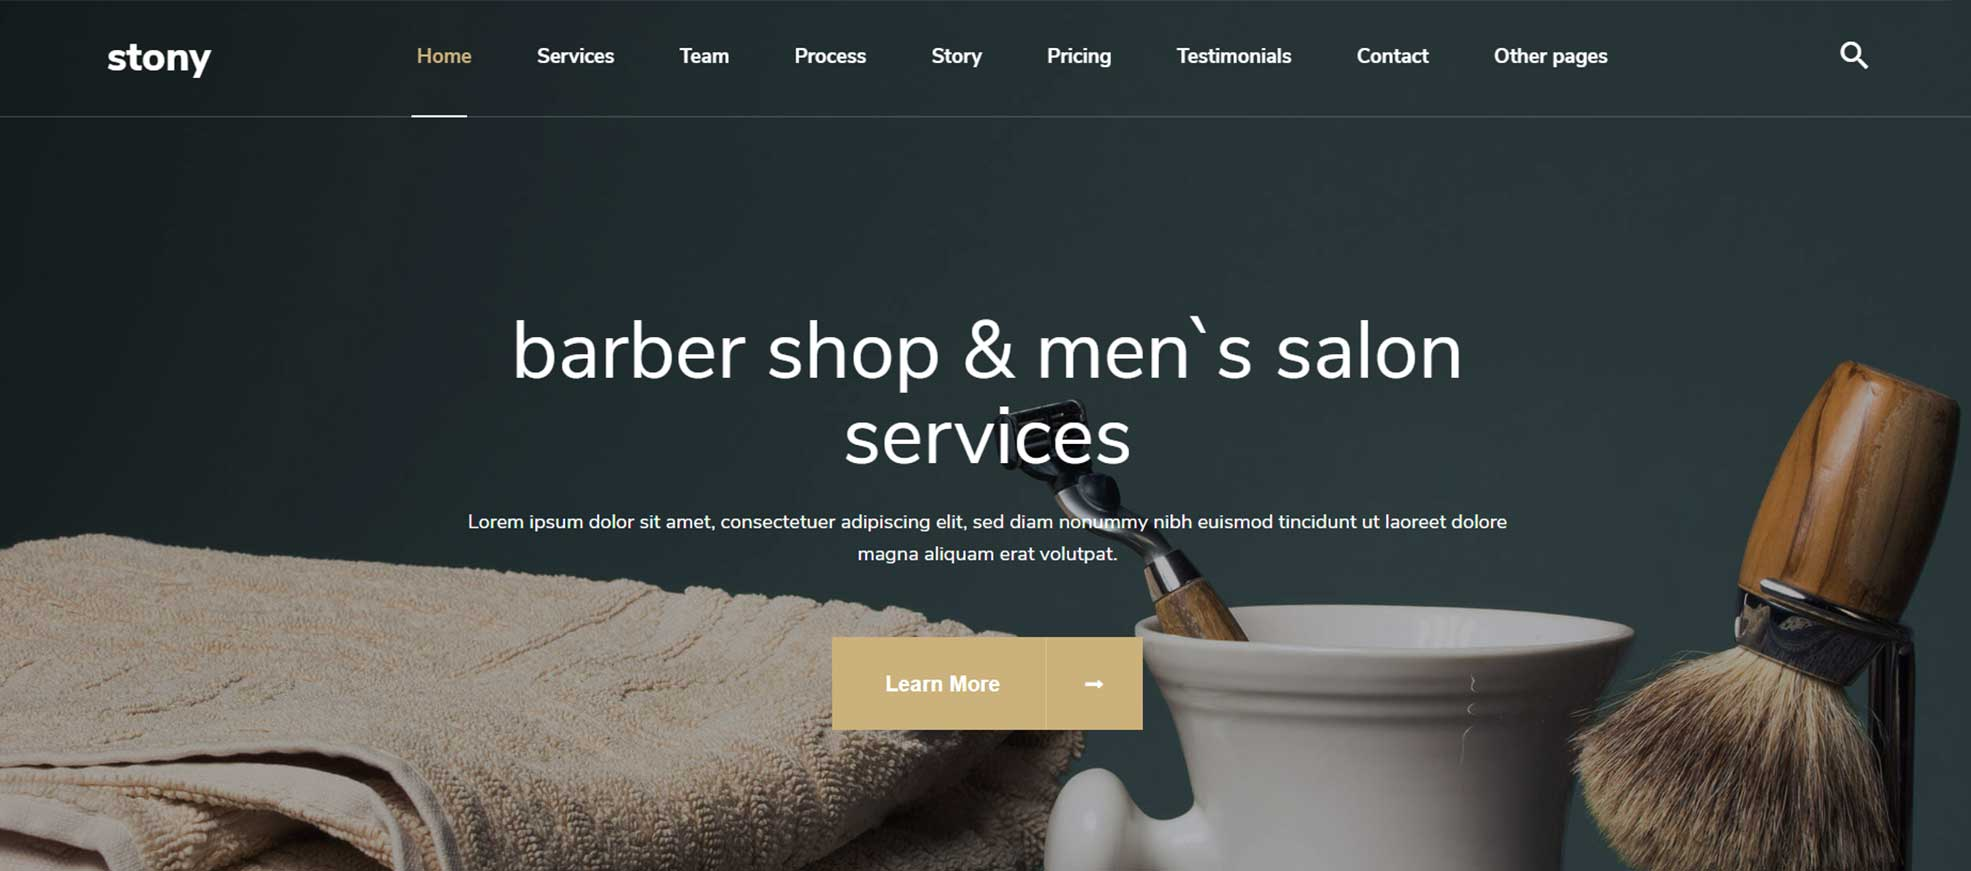 Stony - Small Business WordPress